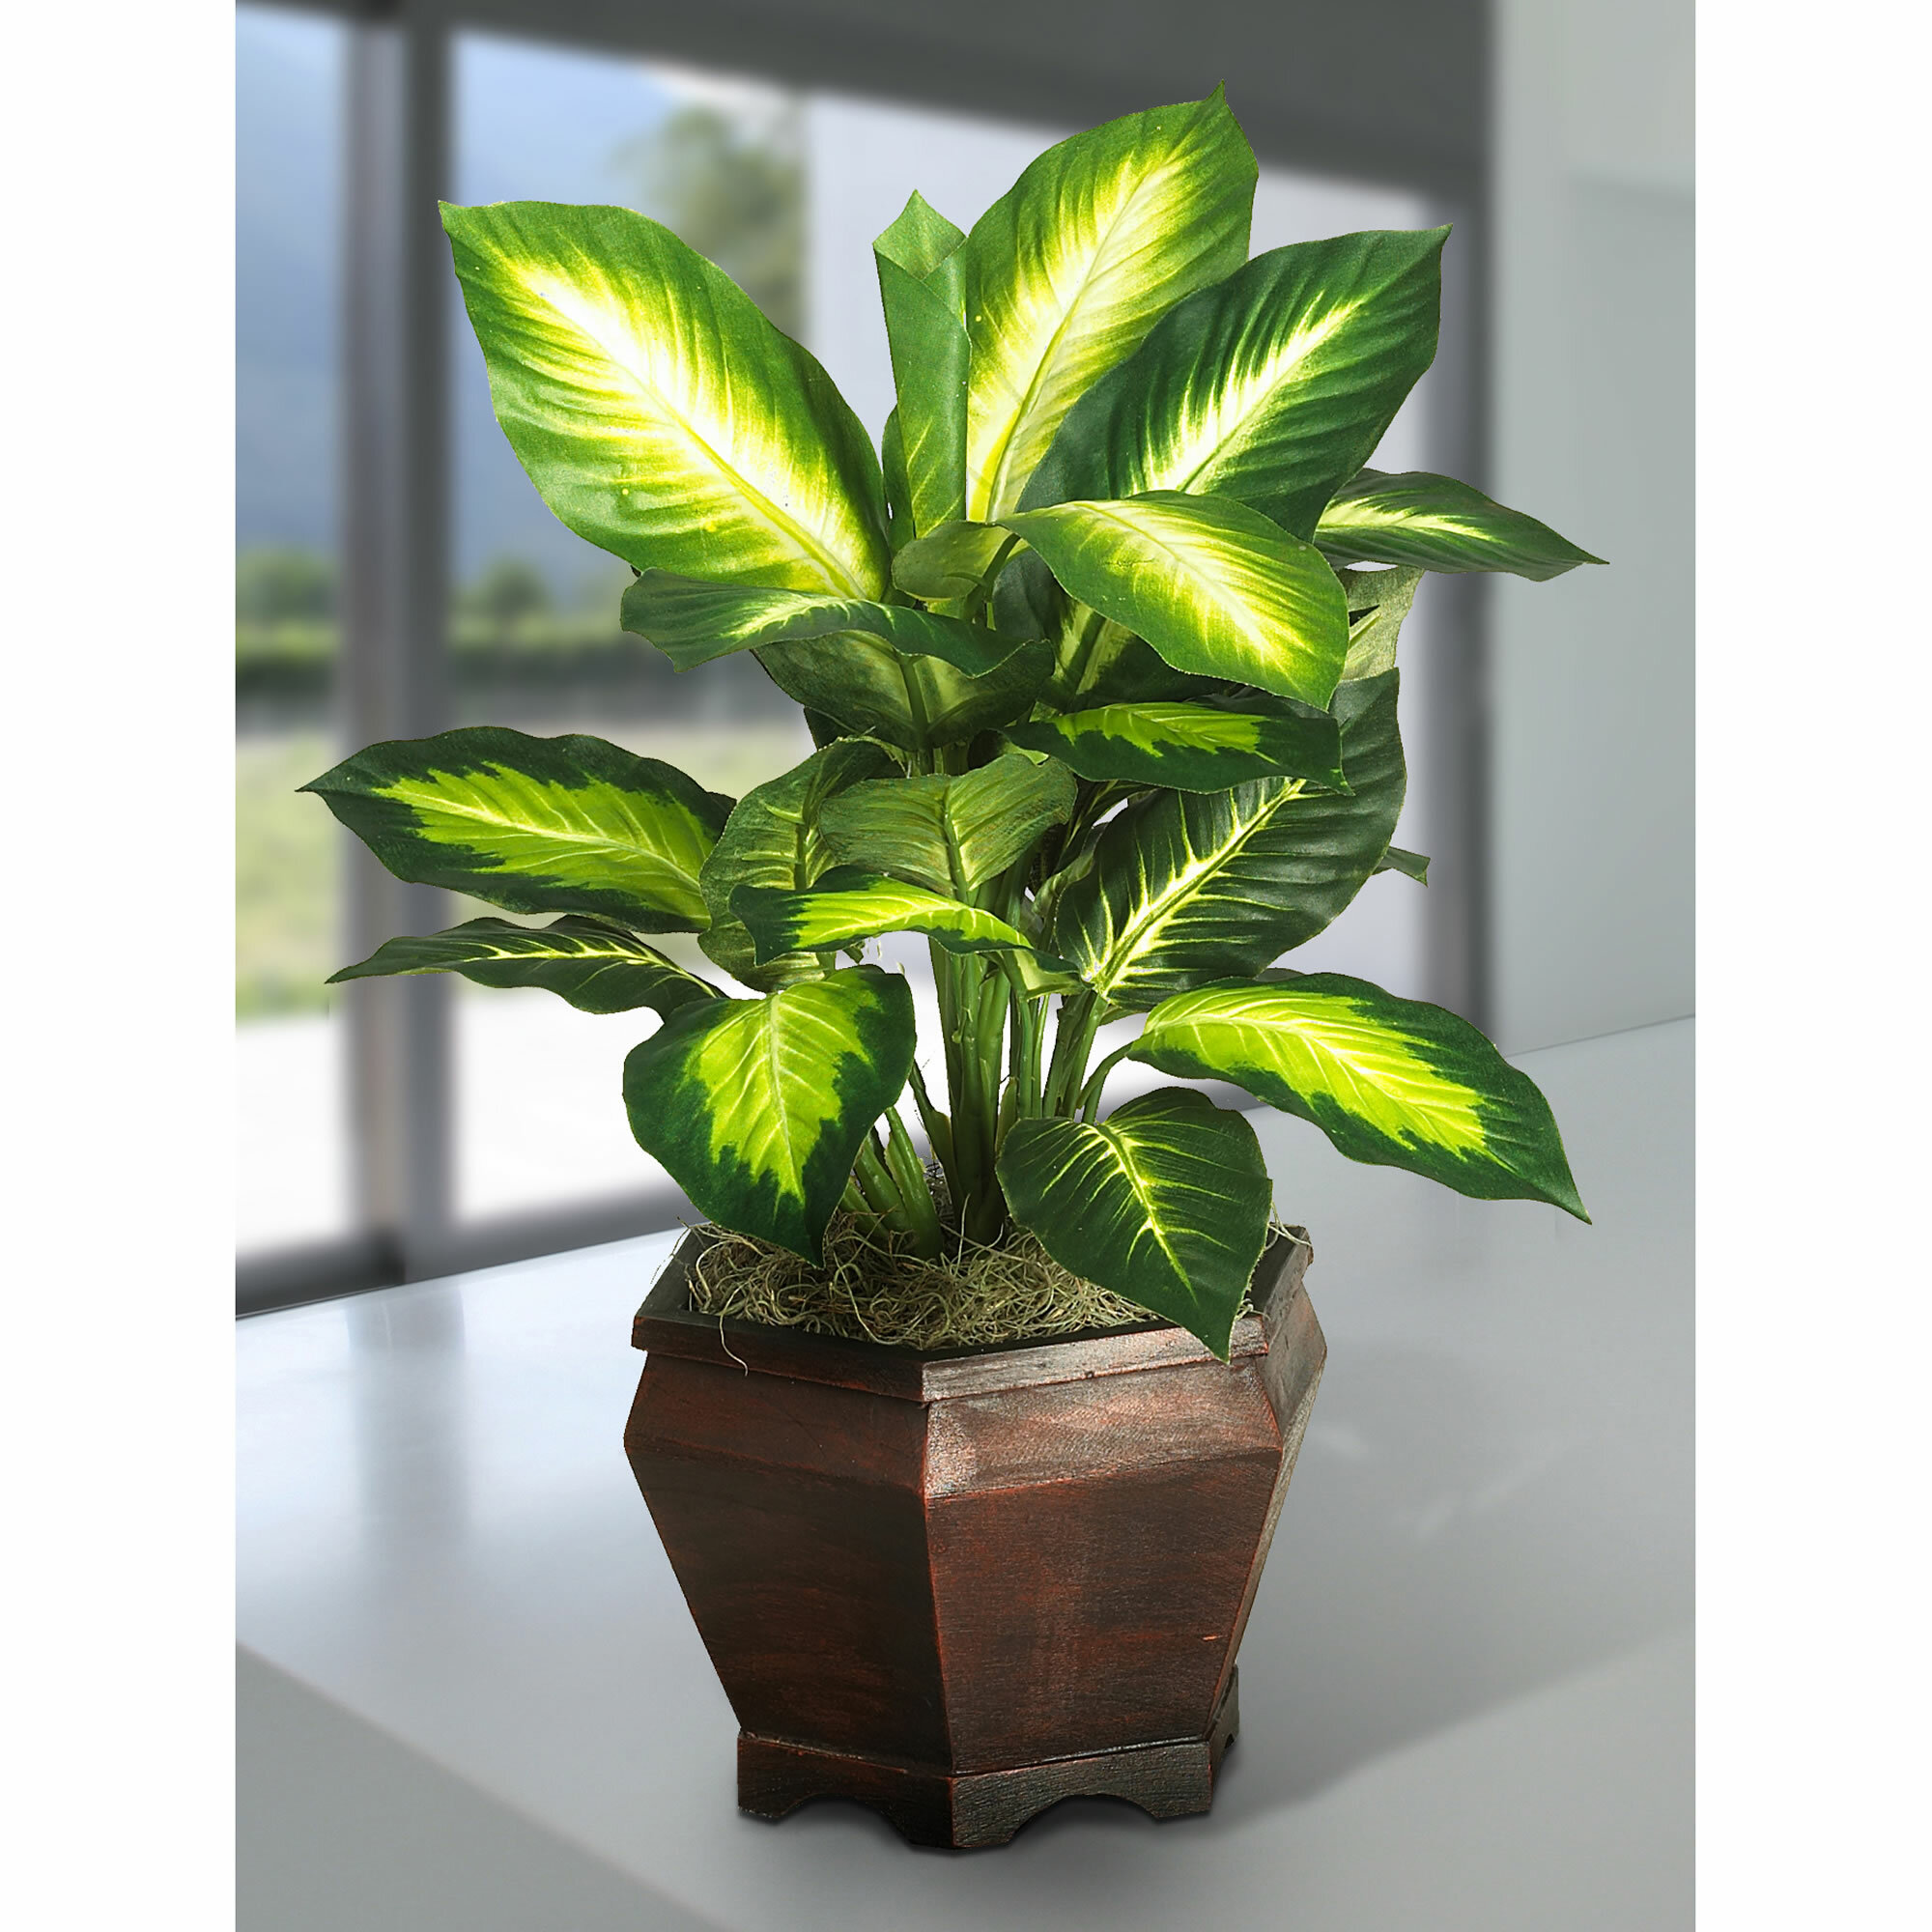 Bay Isle Home 20 5 Artificial Silk Golden Dieffenbachia Desk Top Foliage Plant In Planter Reviews Wayfair